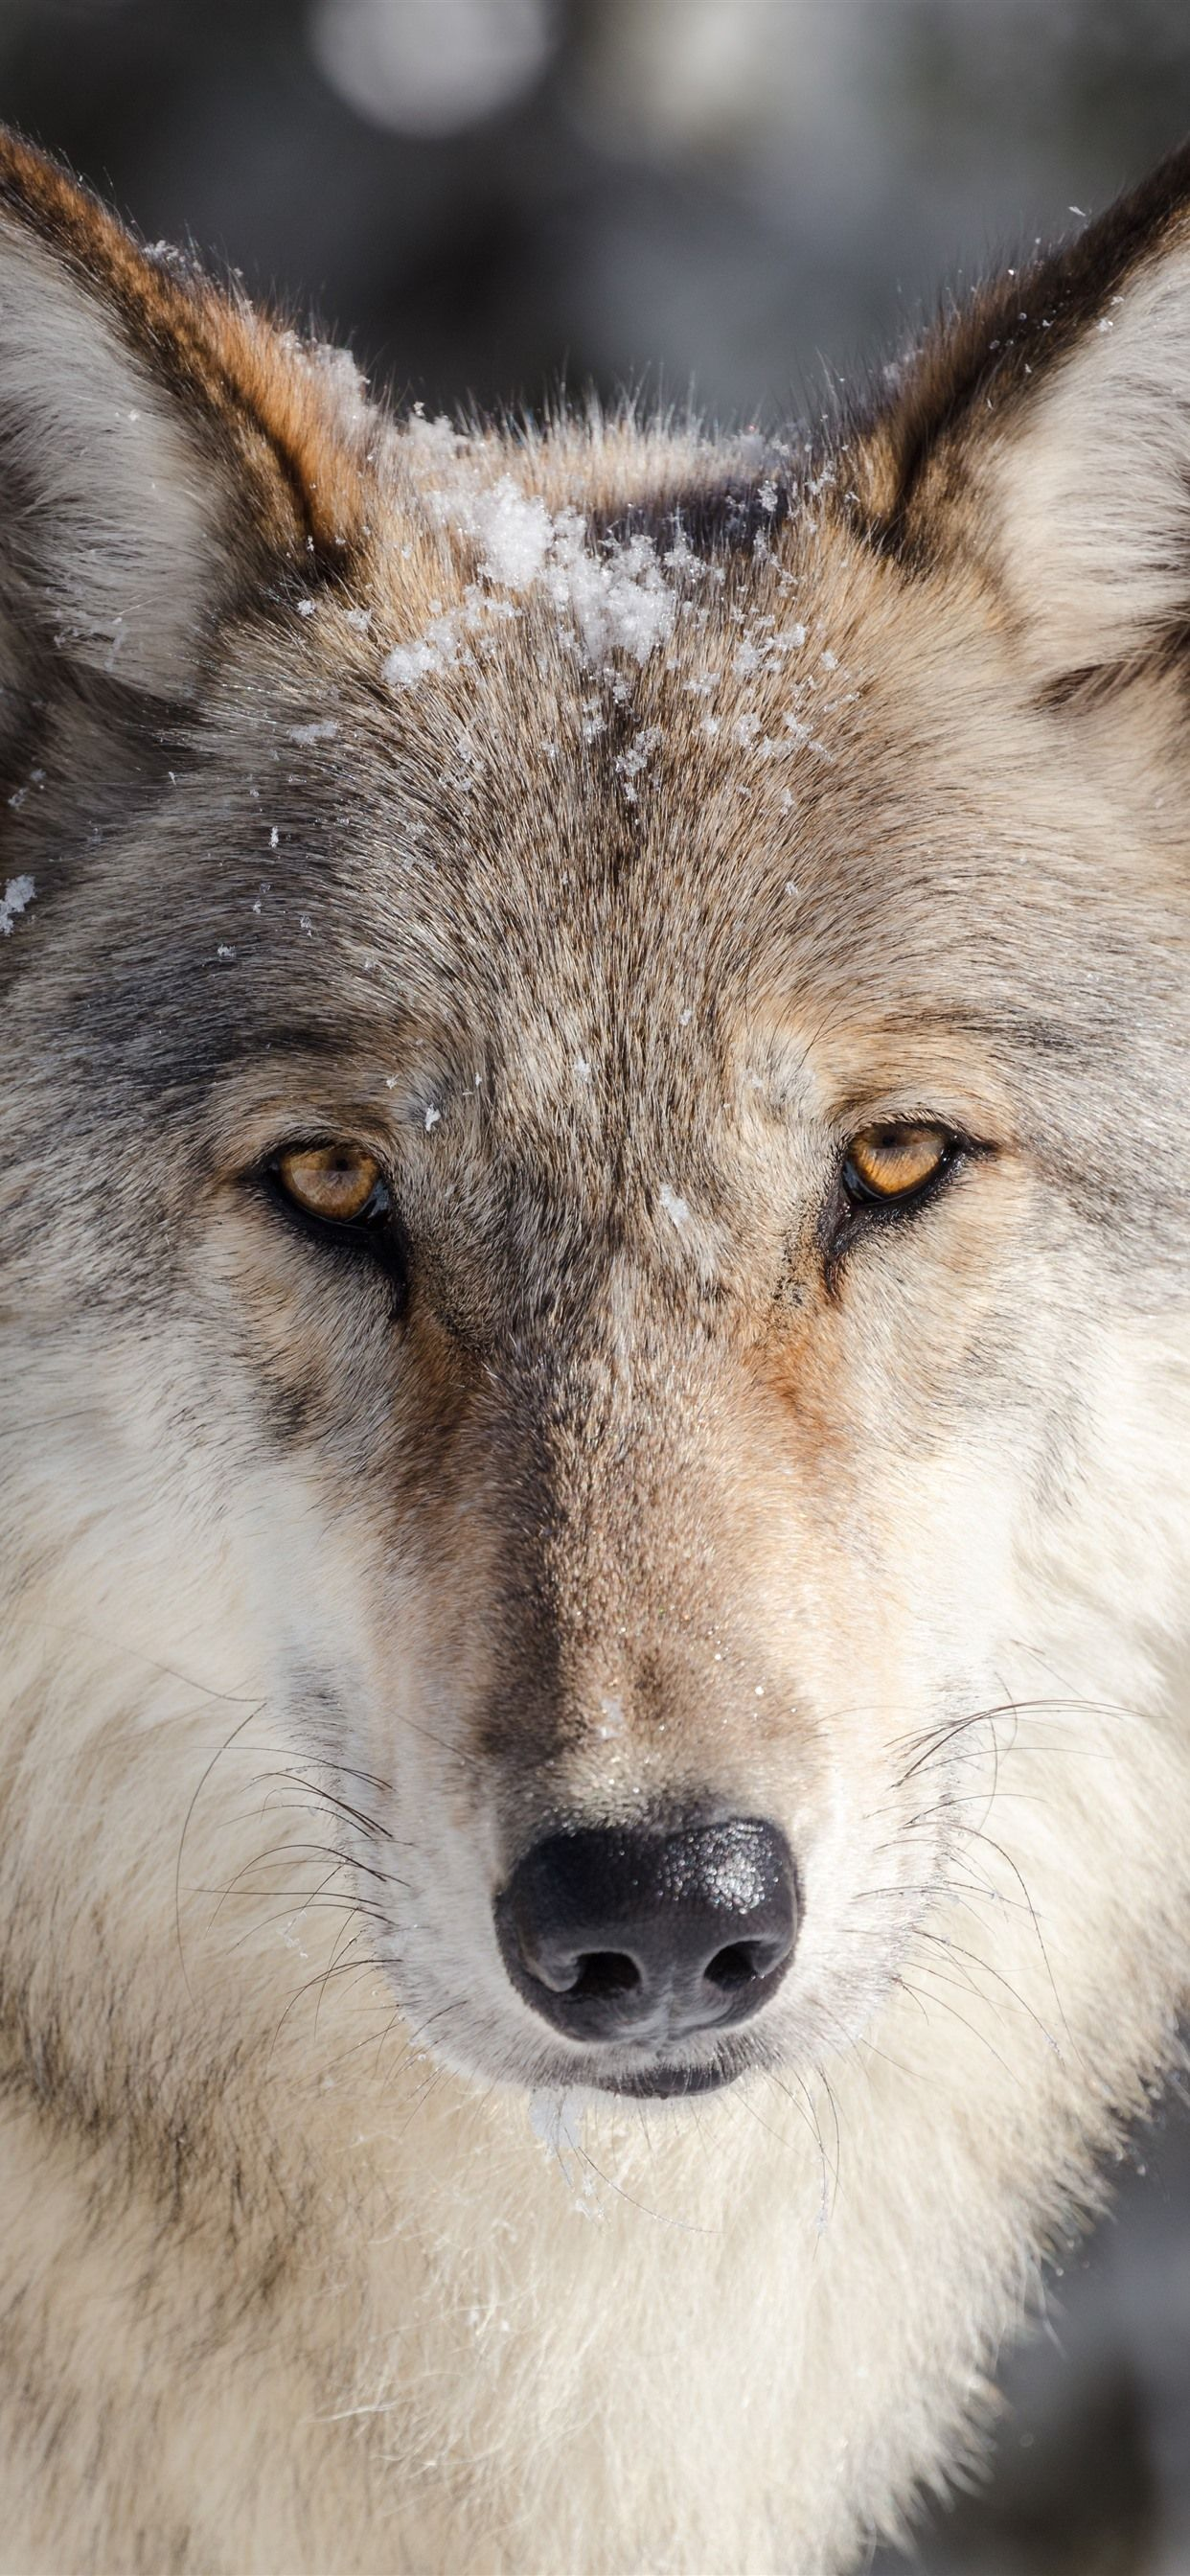 Wolf Wallpaper for iPhone (72+ images) (With images